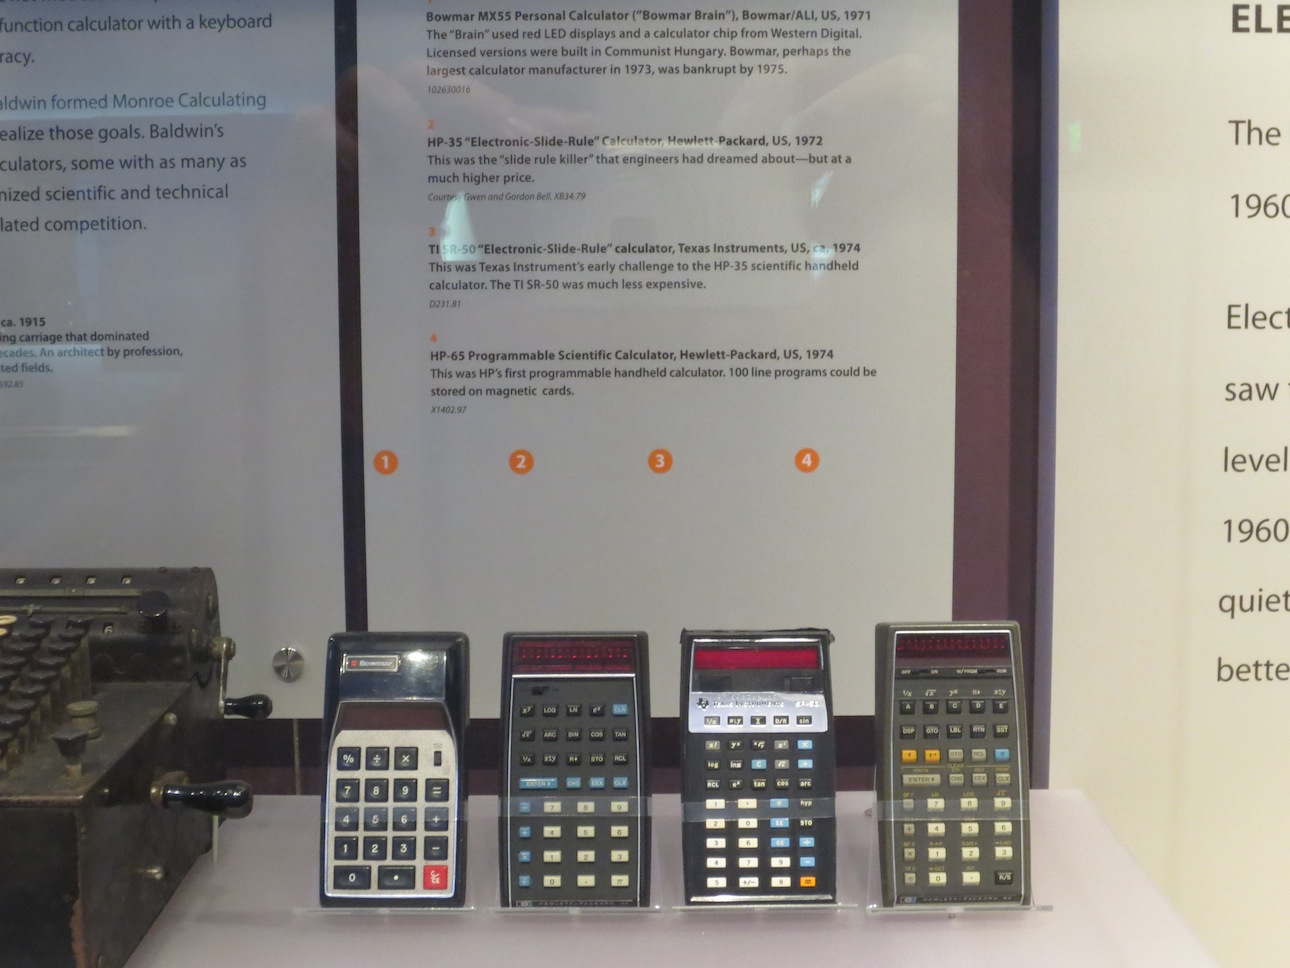 Handheld calculators from the 1970s.